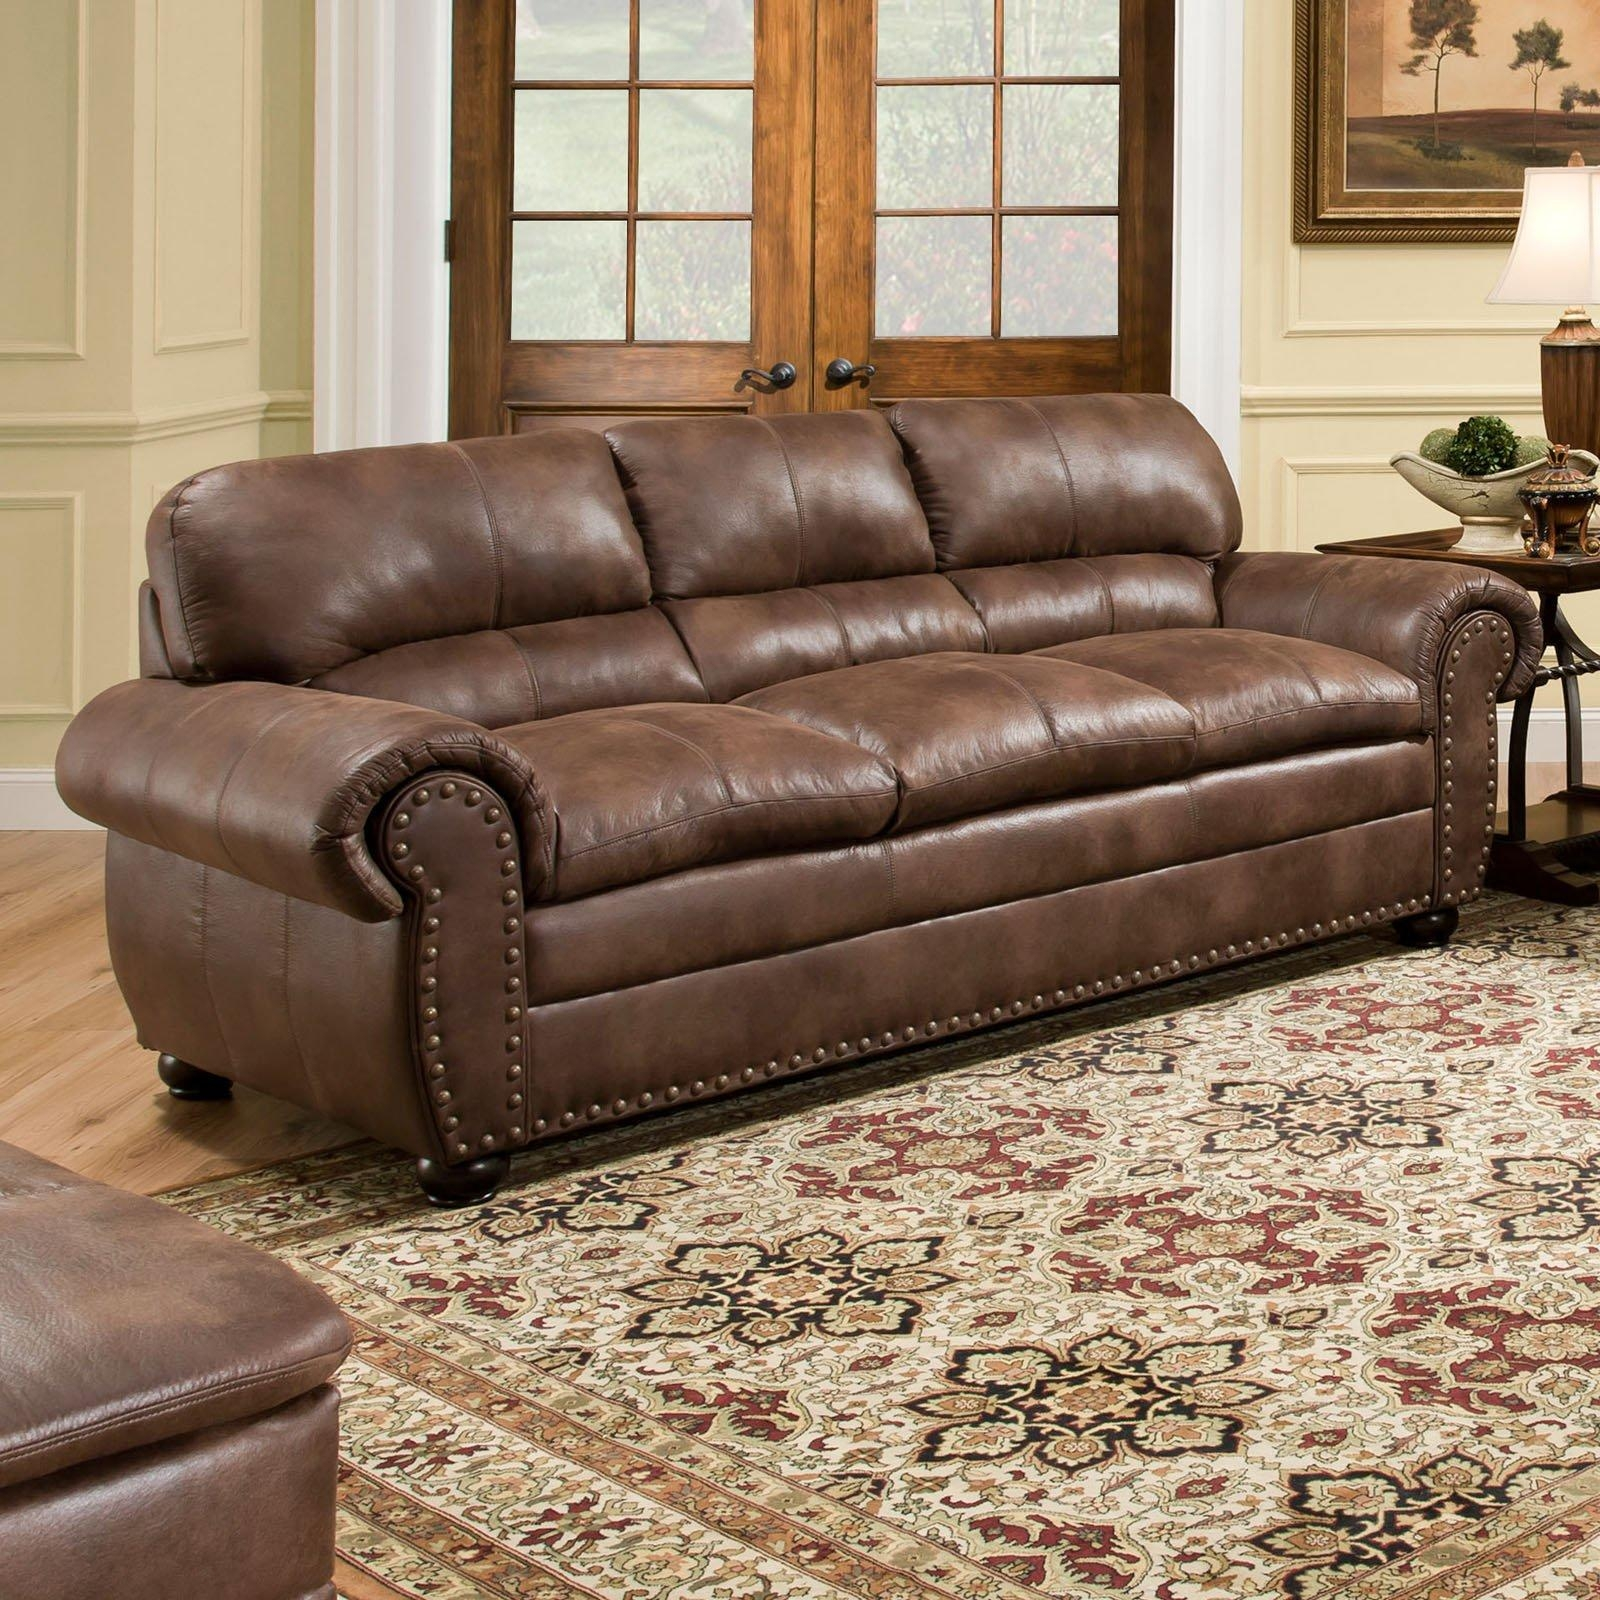 simmons sofa and loveseat nashville bed 20 collection of sofas loveseats ideas